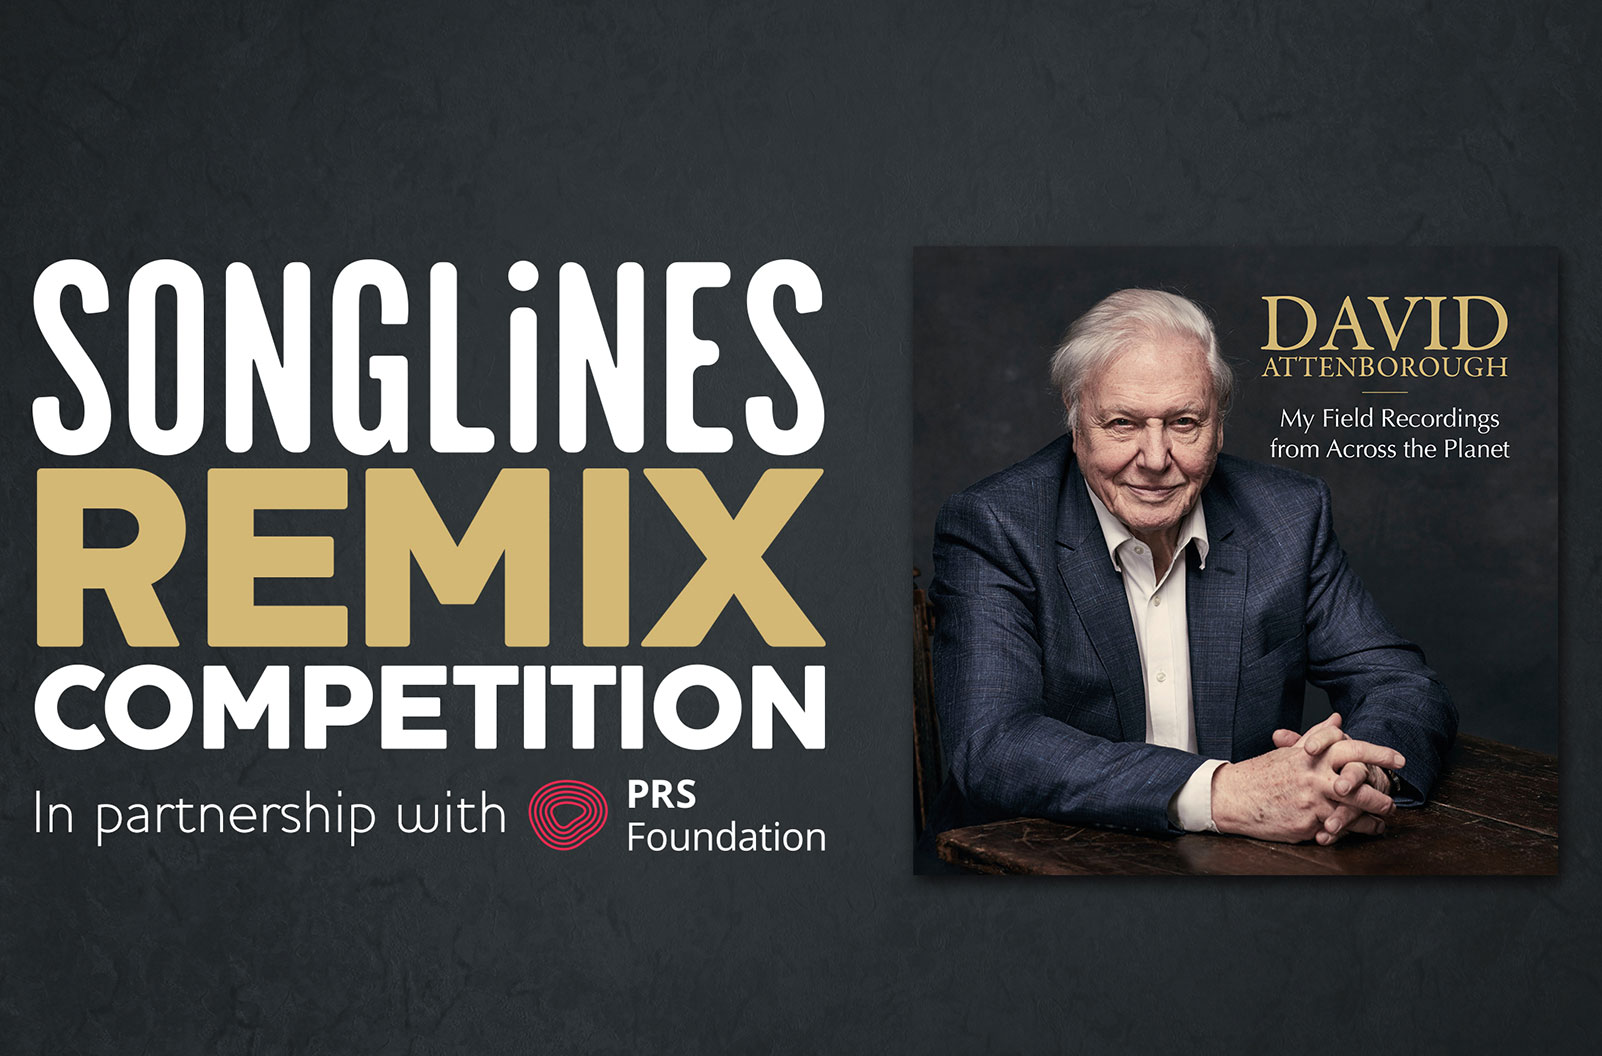 Songlines Remix Competition